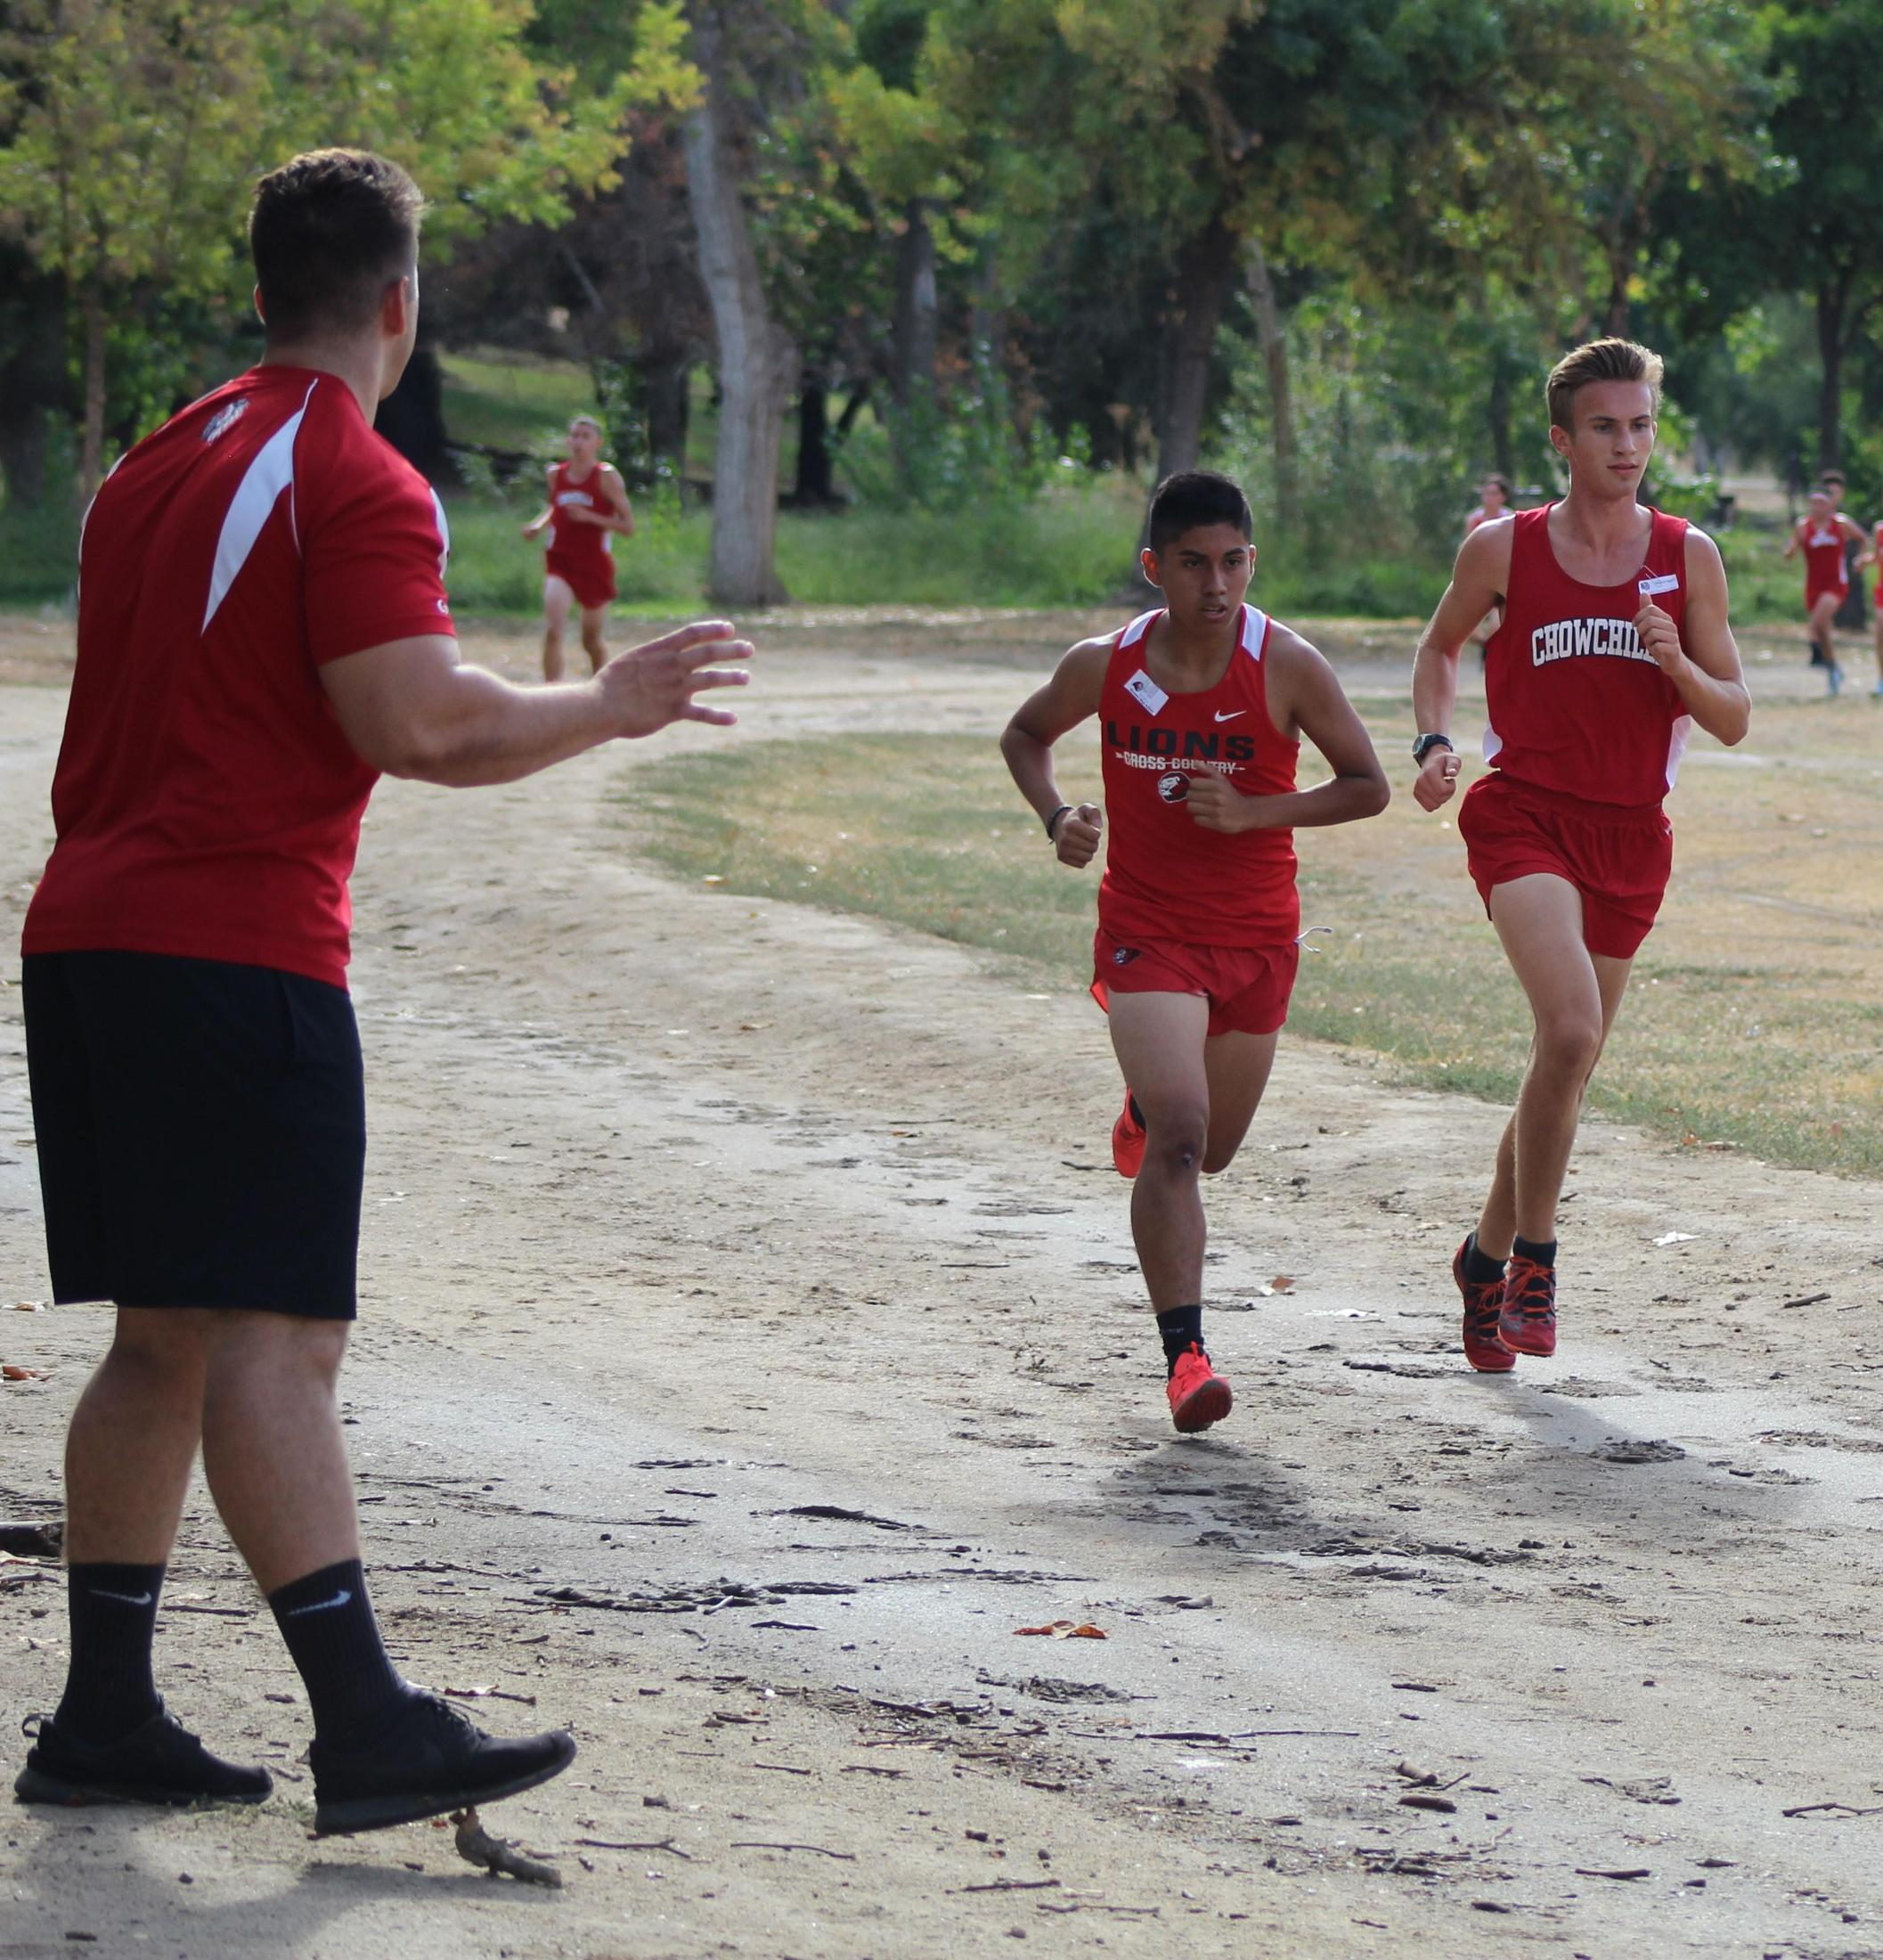 Cross Country runners in action at Woodward Park.